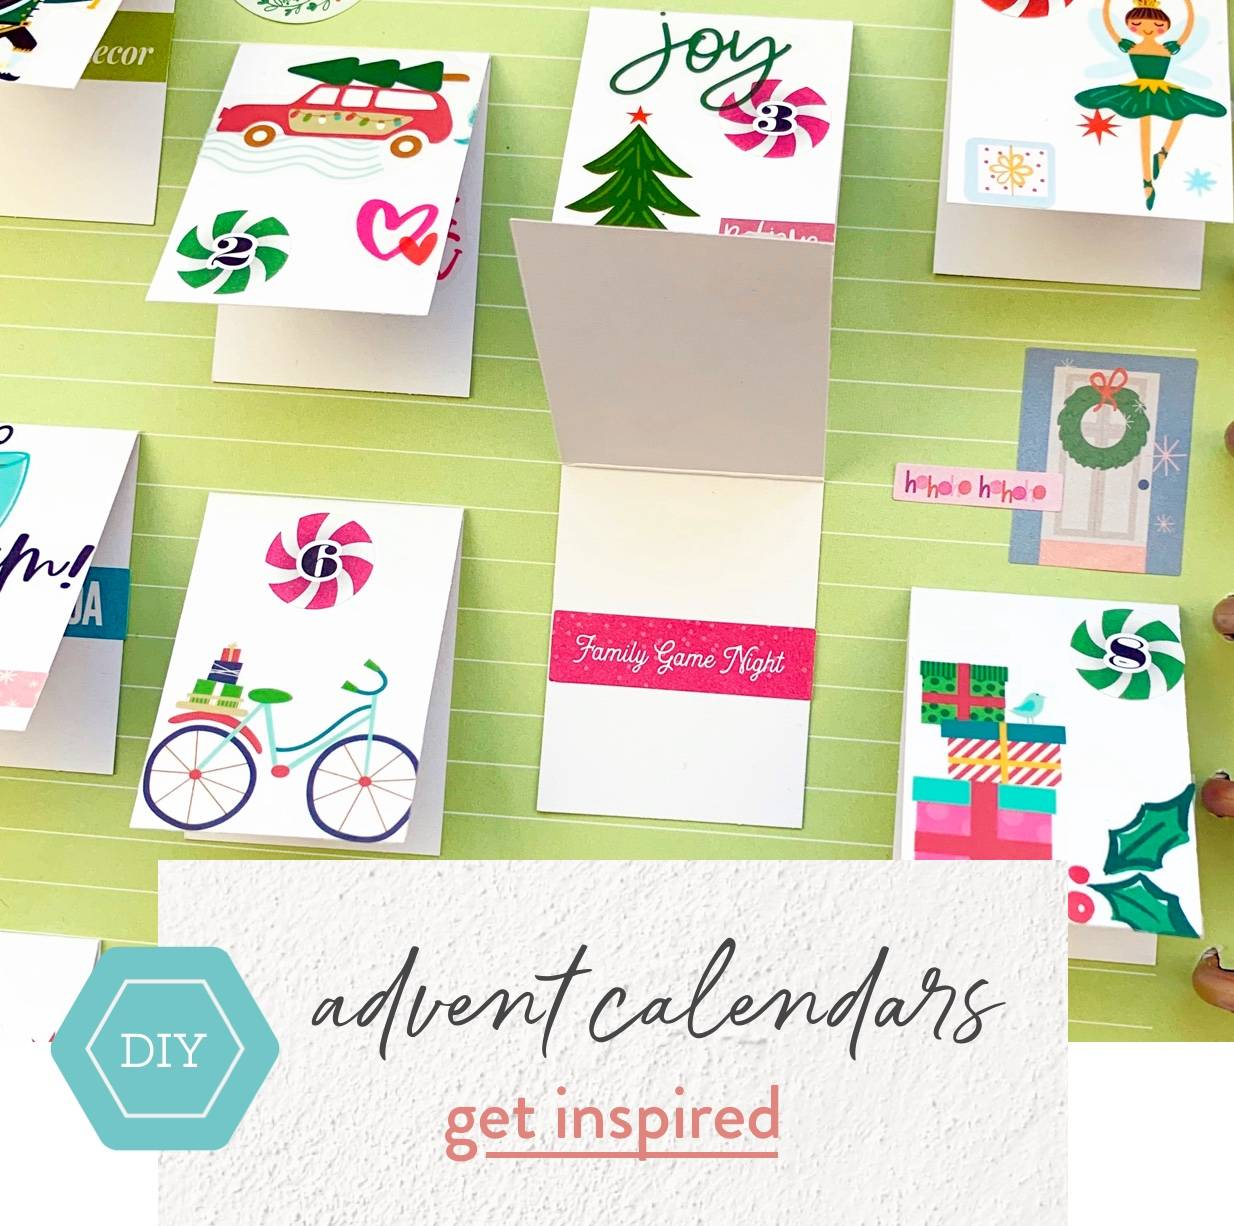 diy advent calendars get inspired